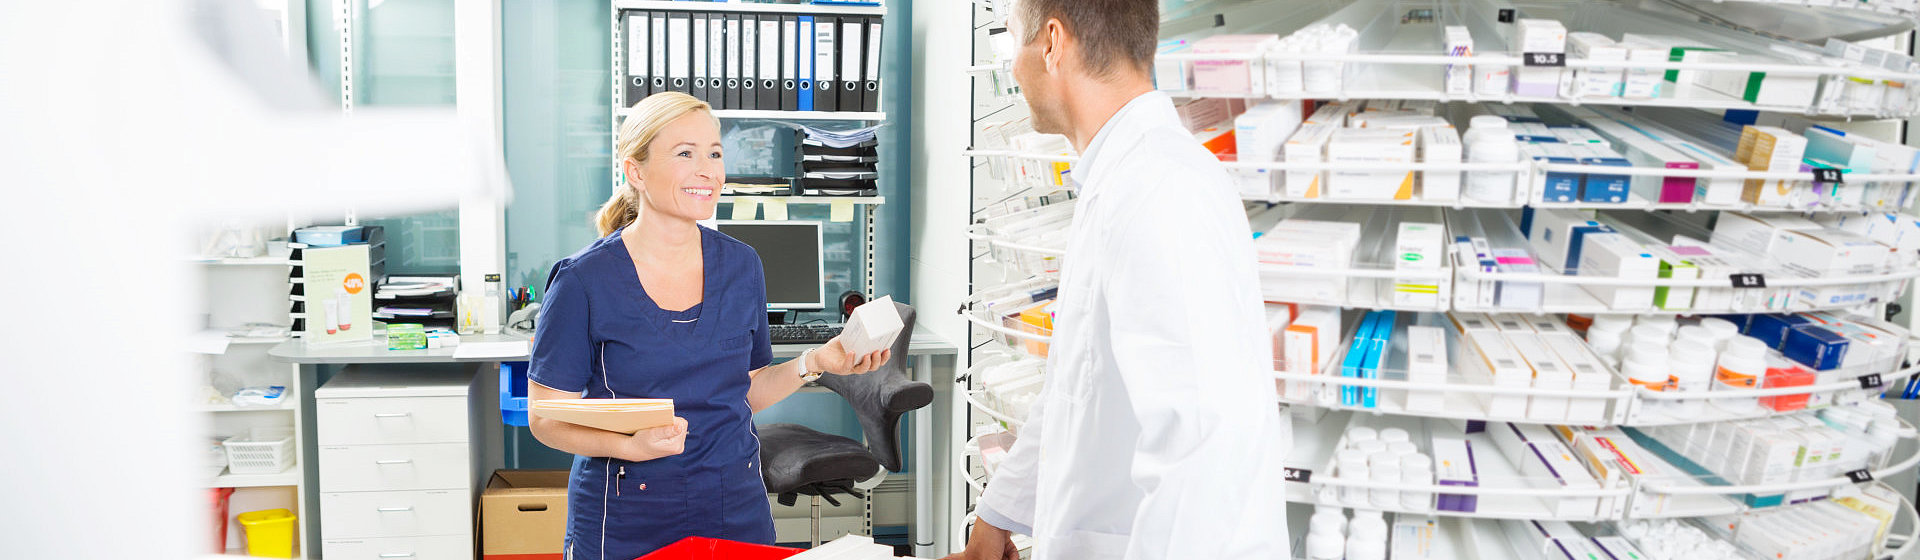 Pharmacist and assistant counting stock in pharmacy